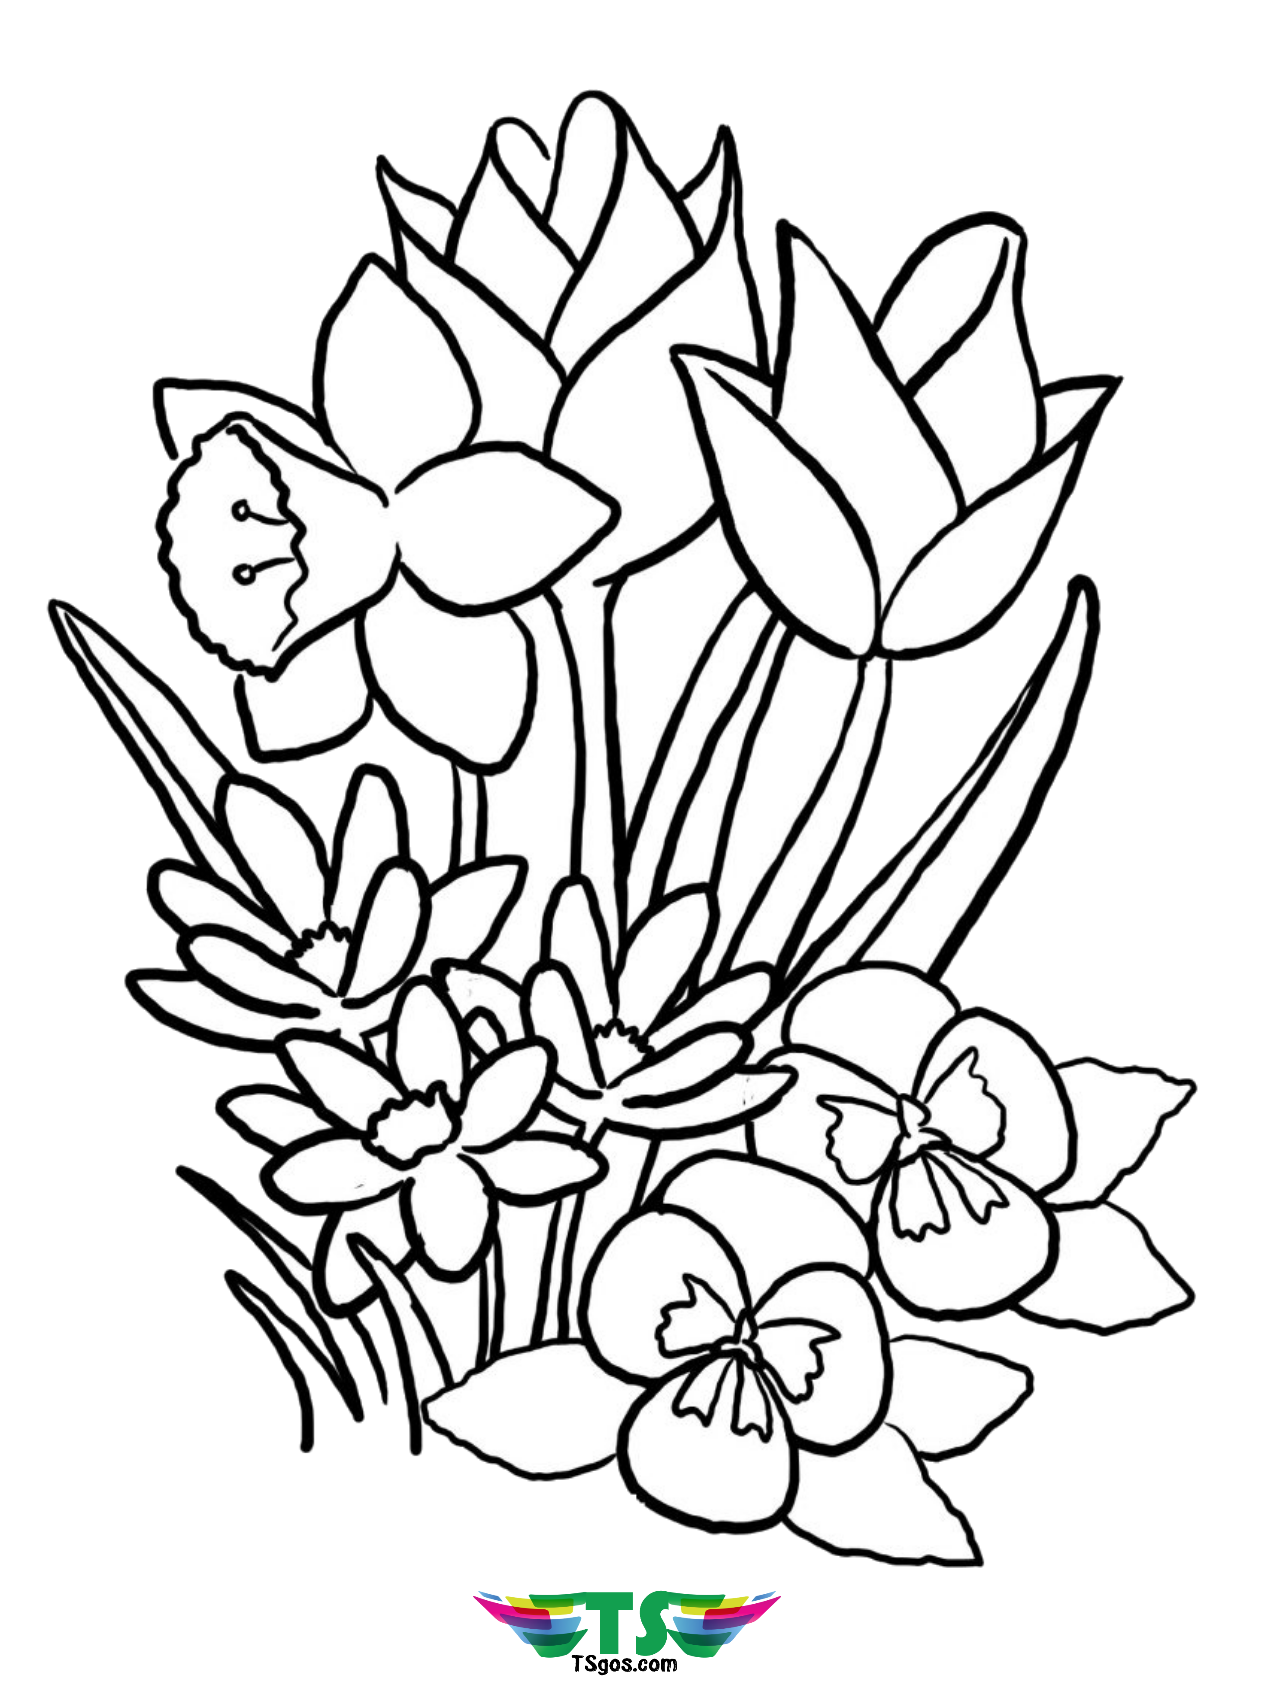 coloring flower free printable flower coloring pages 16 pics how to flower coloring